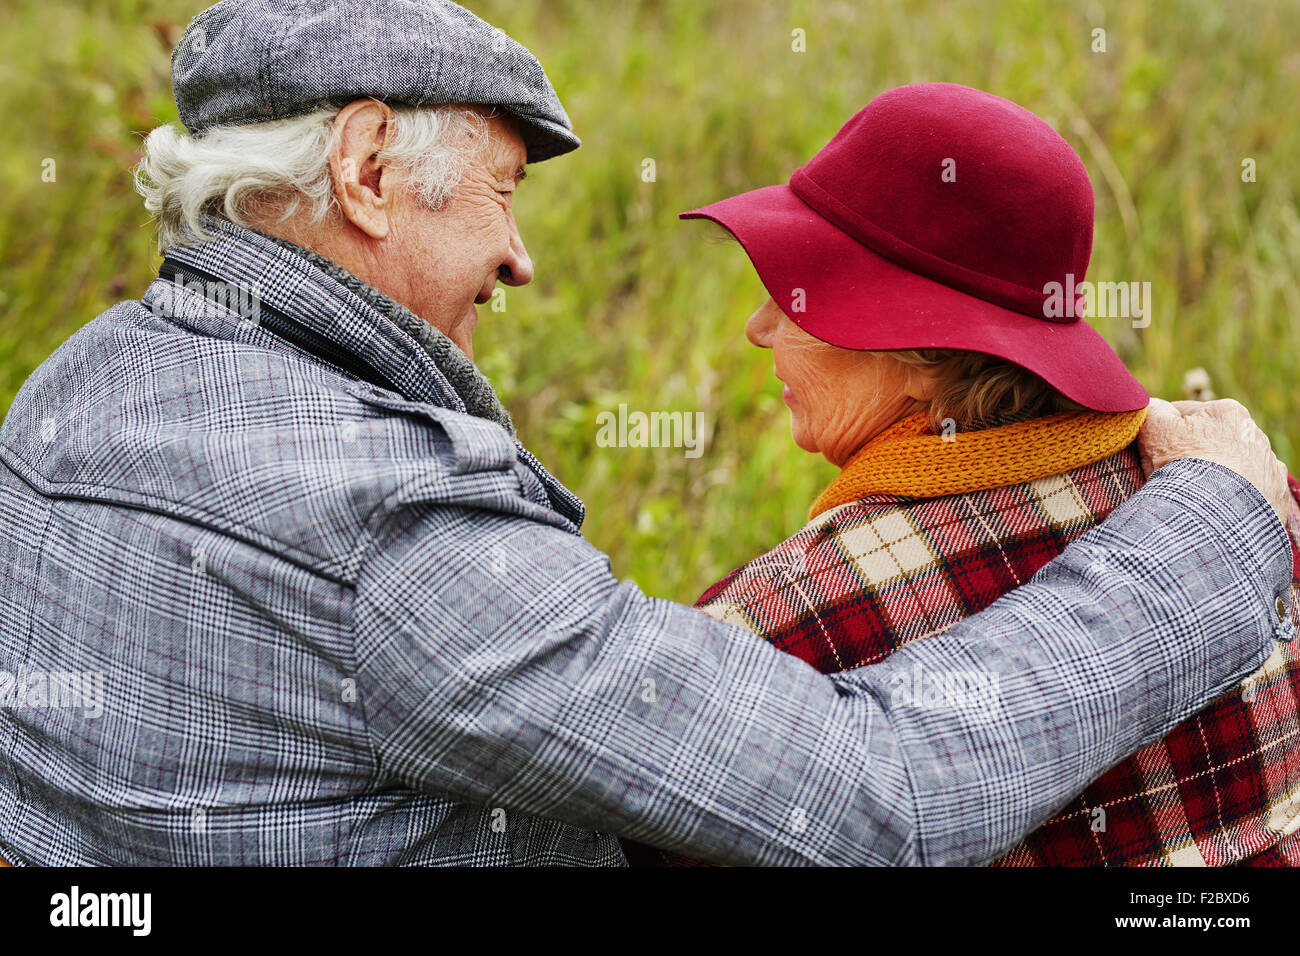 Back view of affectionate seniors interacting in natural environment - Stock Image